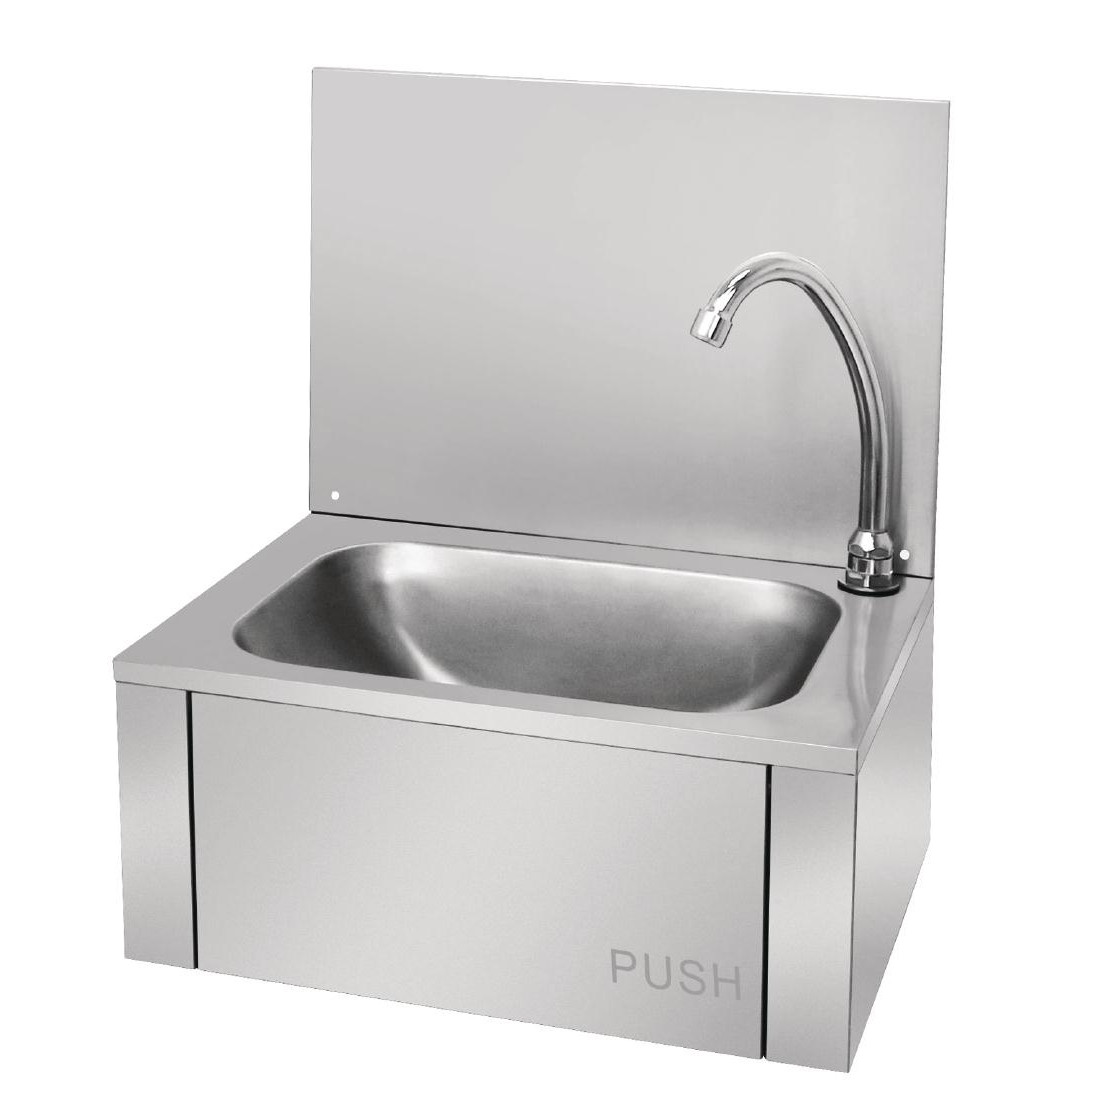 Vogue Stainless Steel Knee Operated Sink Hand Wash